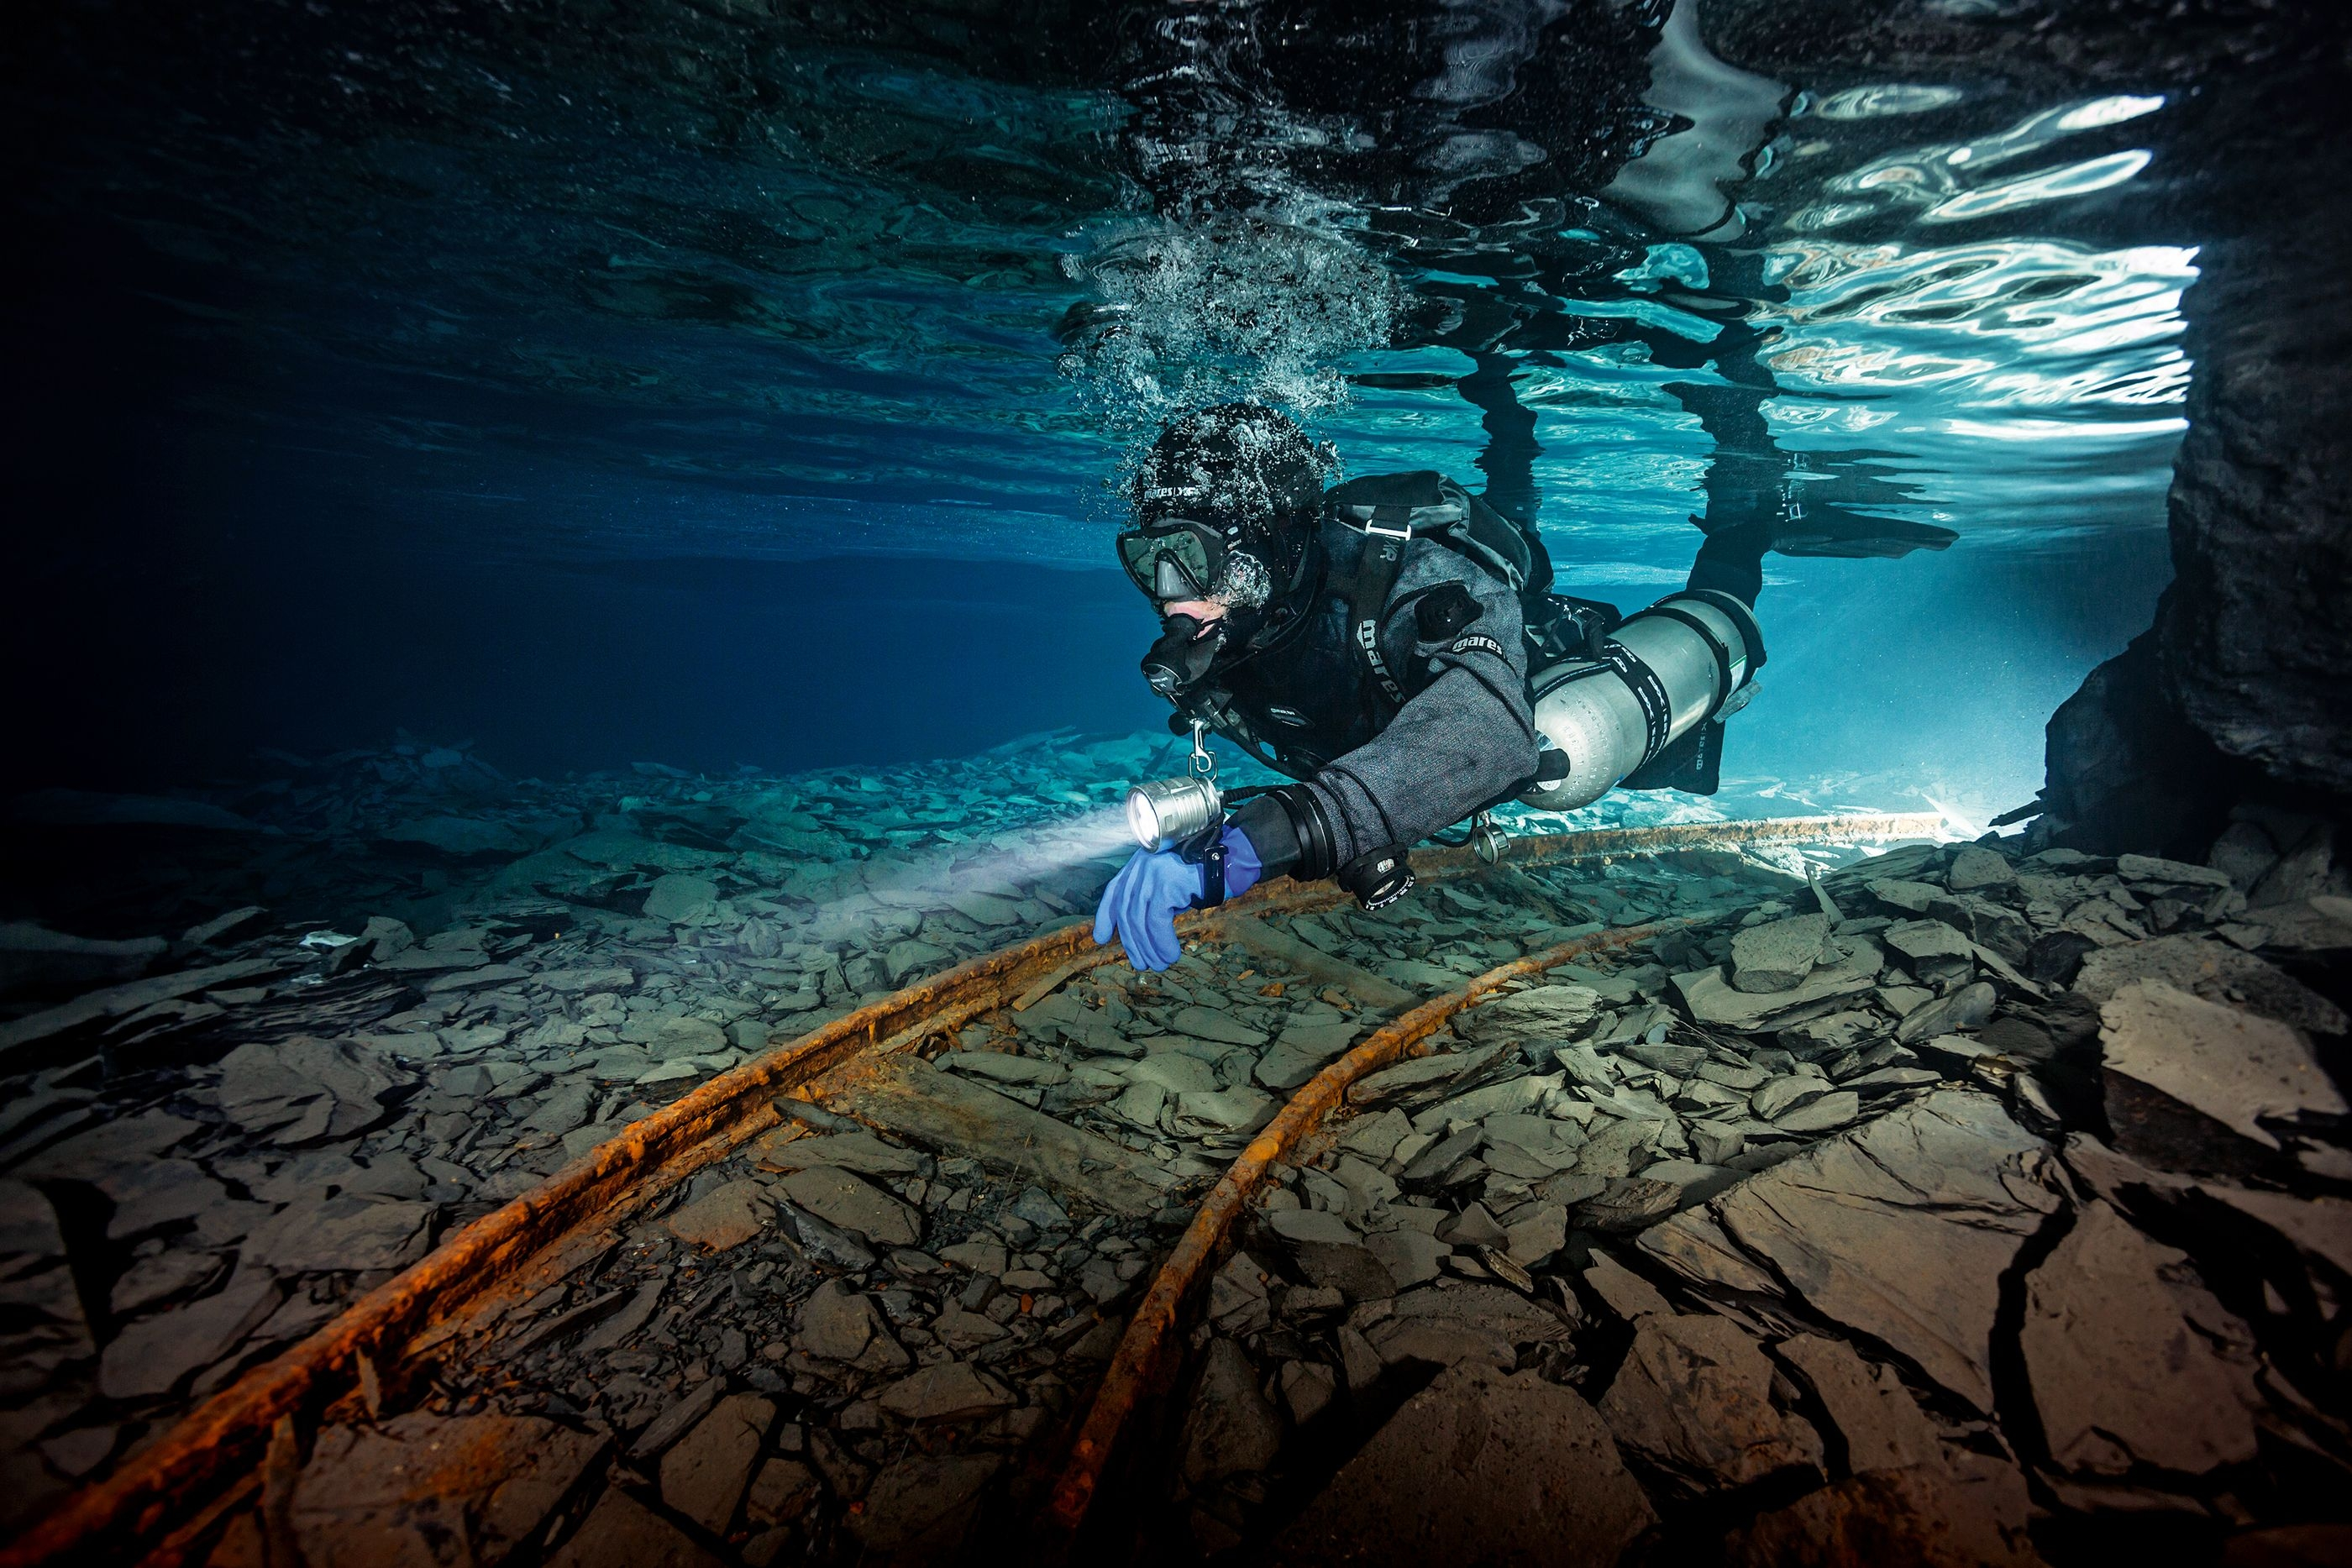 Extended Range Sidemount Diver swimming in a mien